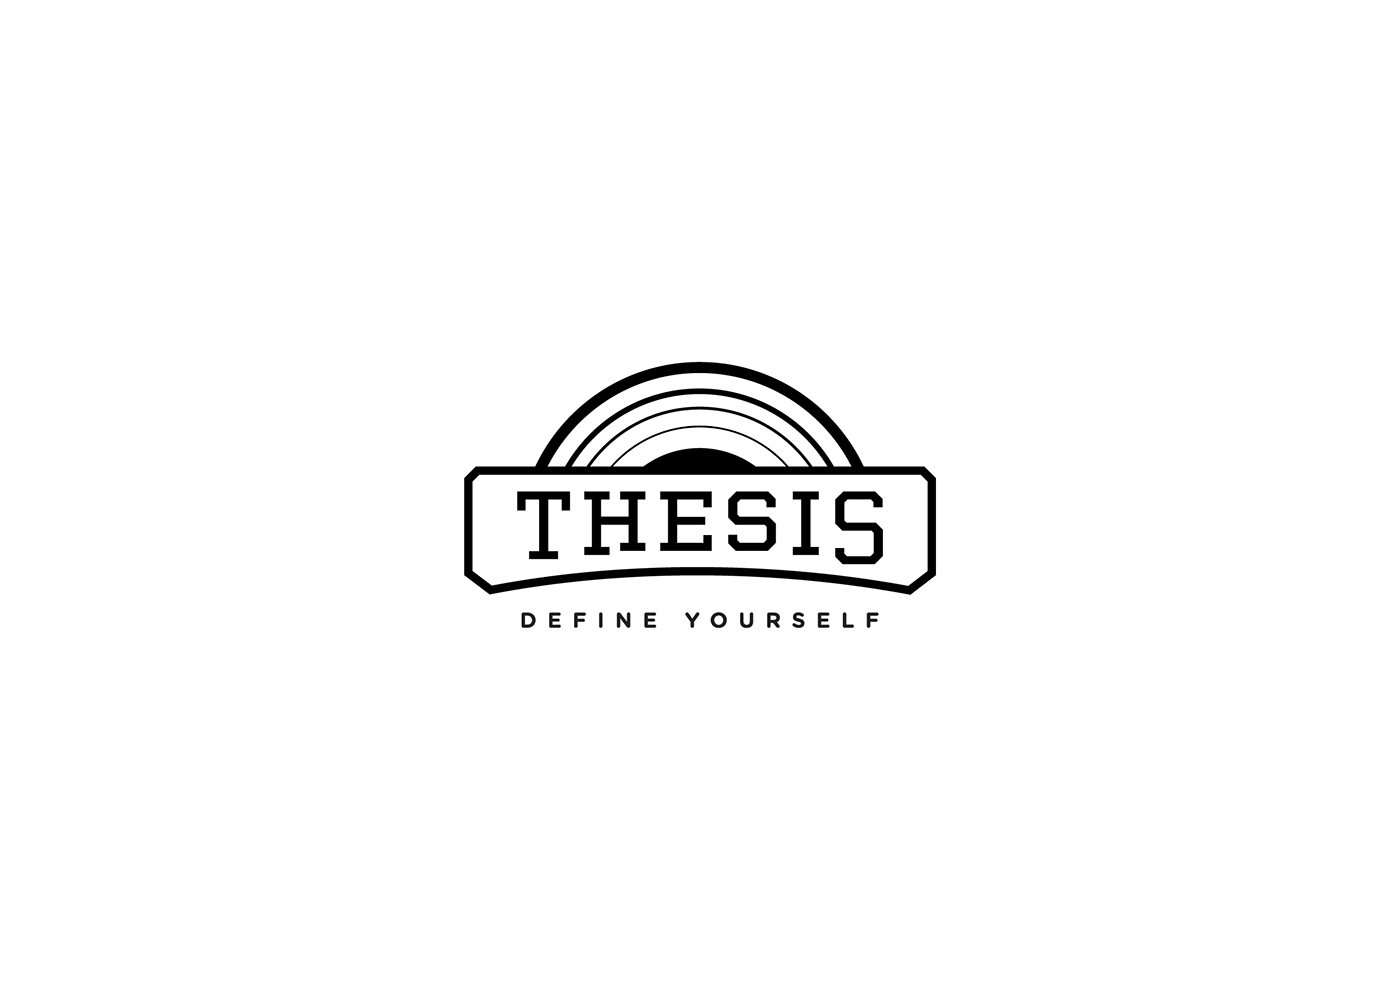 thesis lifestyle clothing Differentiation strategies in the fashion industry  the focus of this thesis will be on zara, the clothing company, which differentiates itself in many areas.